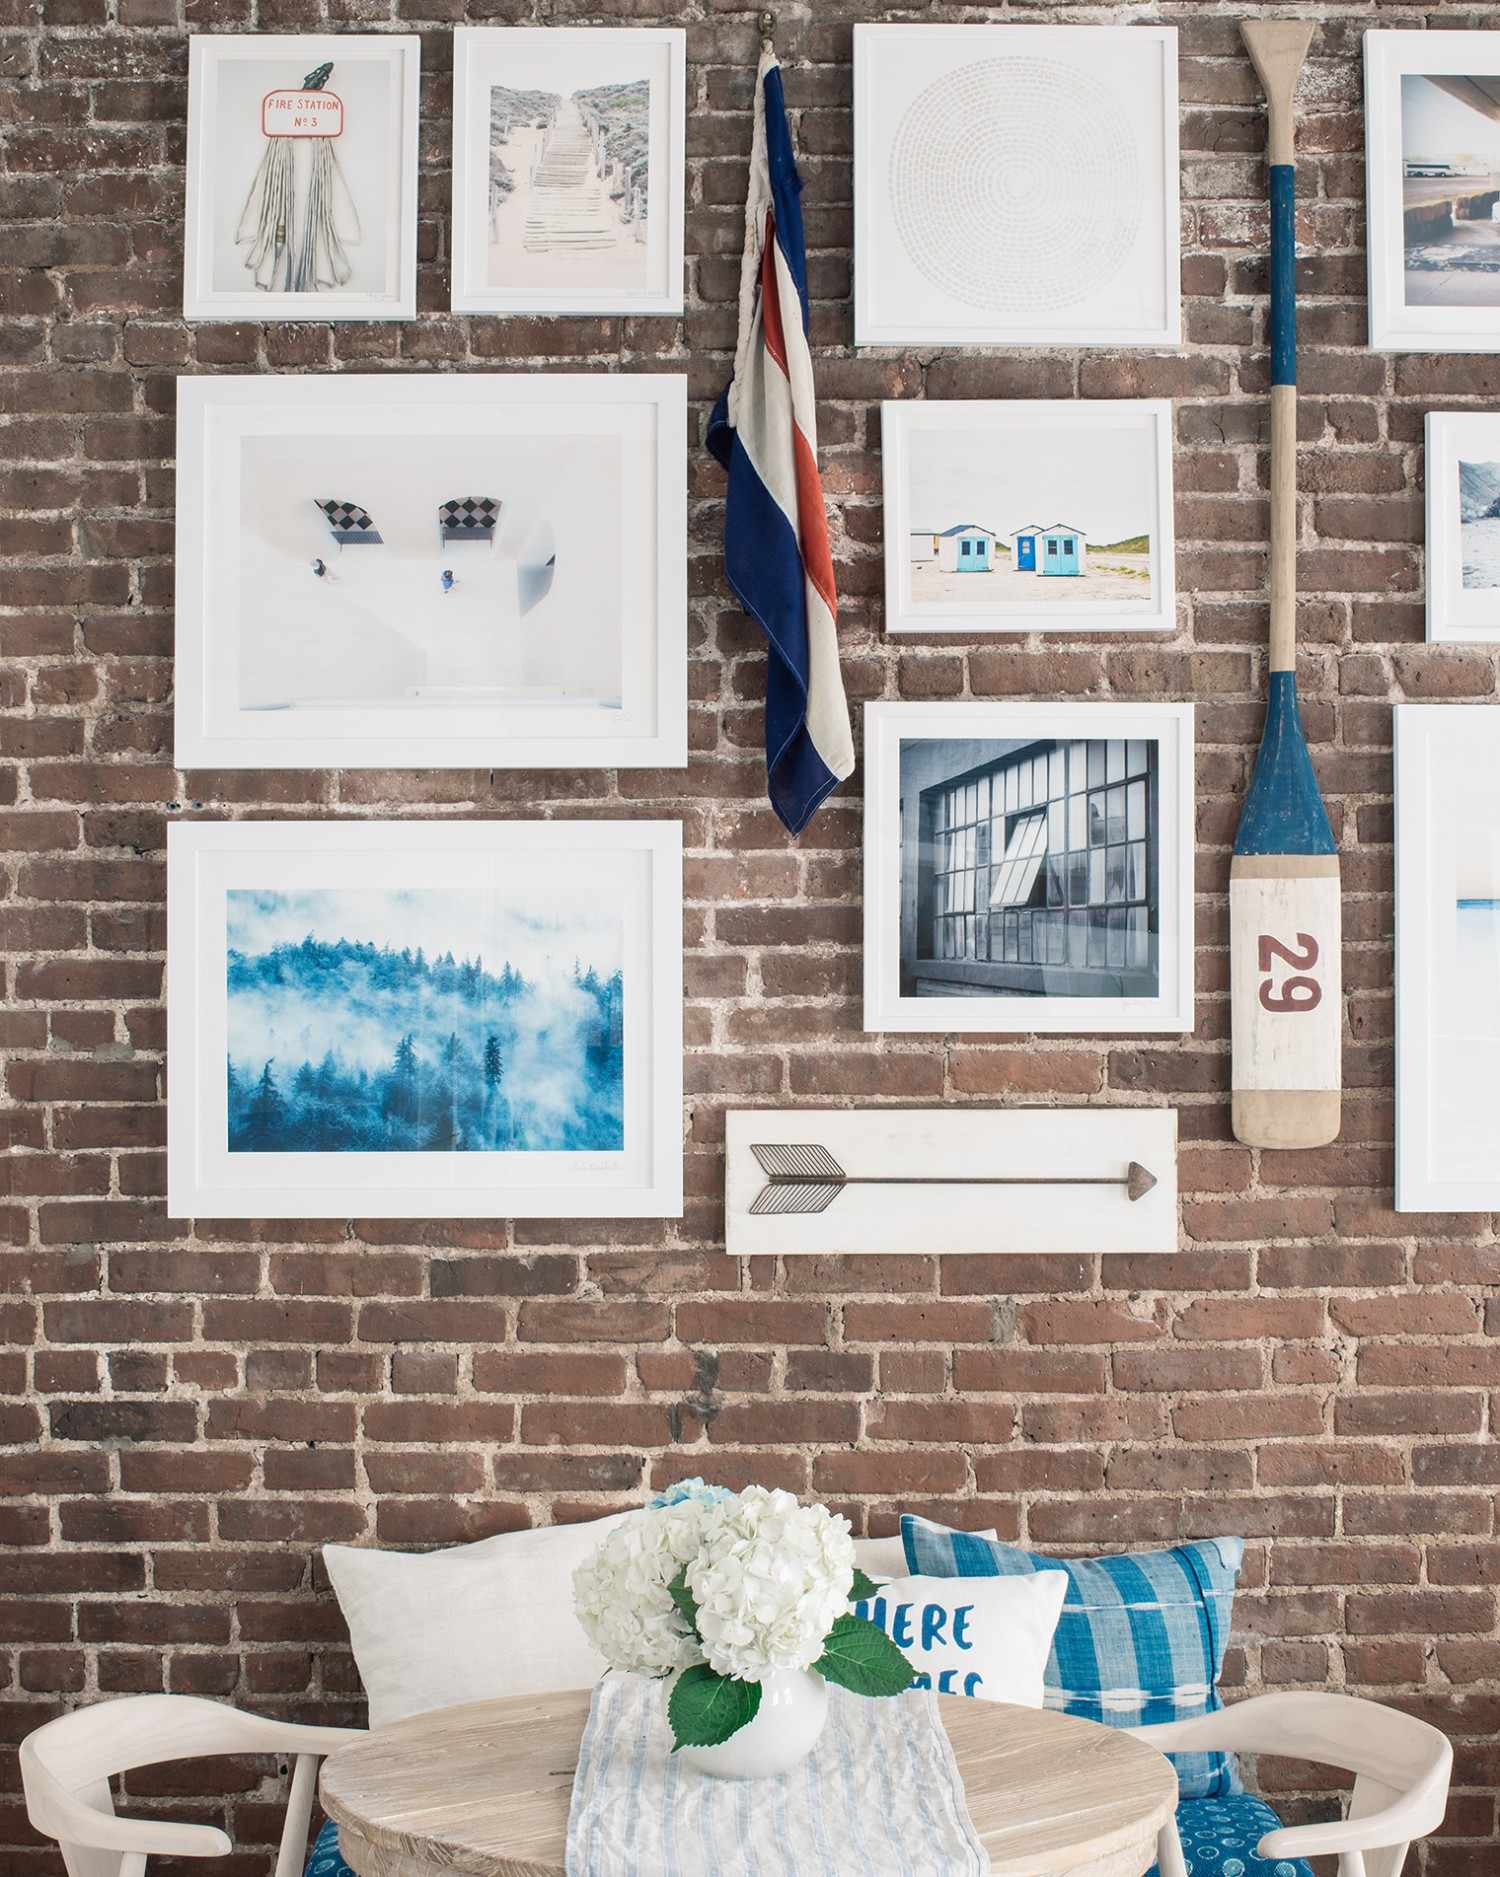 Misty Forest Artwork Was Featured In A Blog Post By Bright Bazaar On How To Hang Gallery Wall Exposed Brick Walls